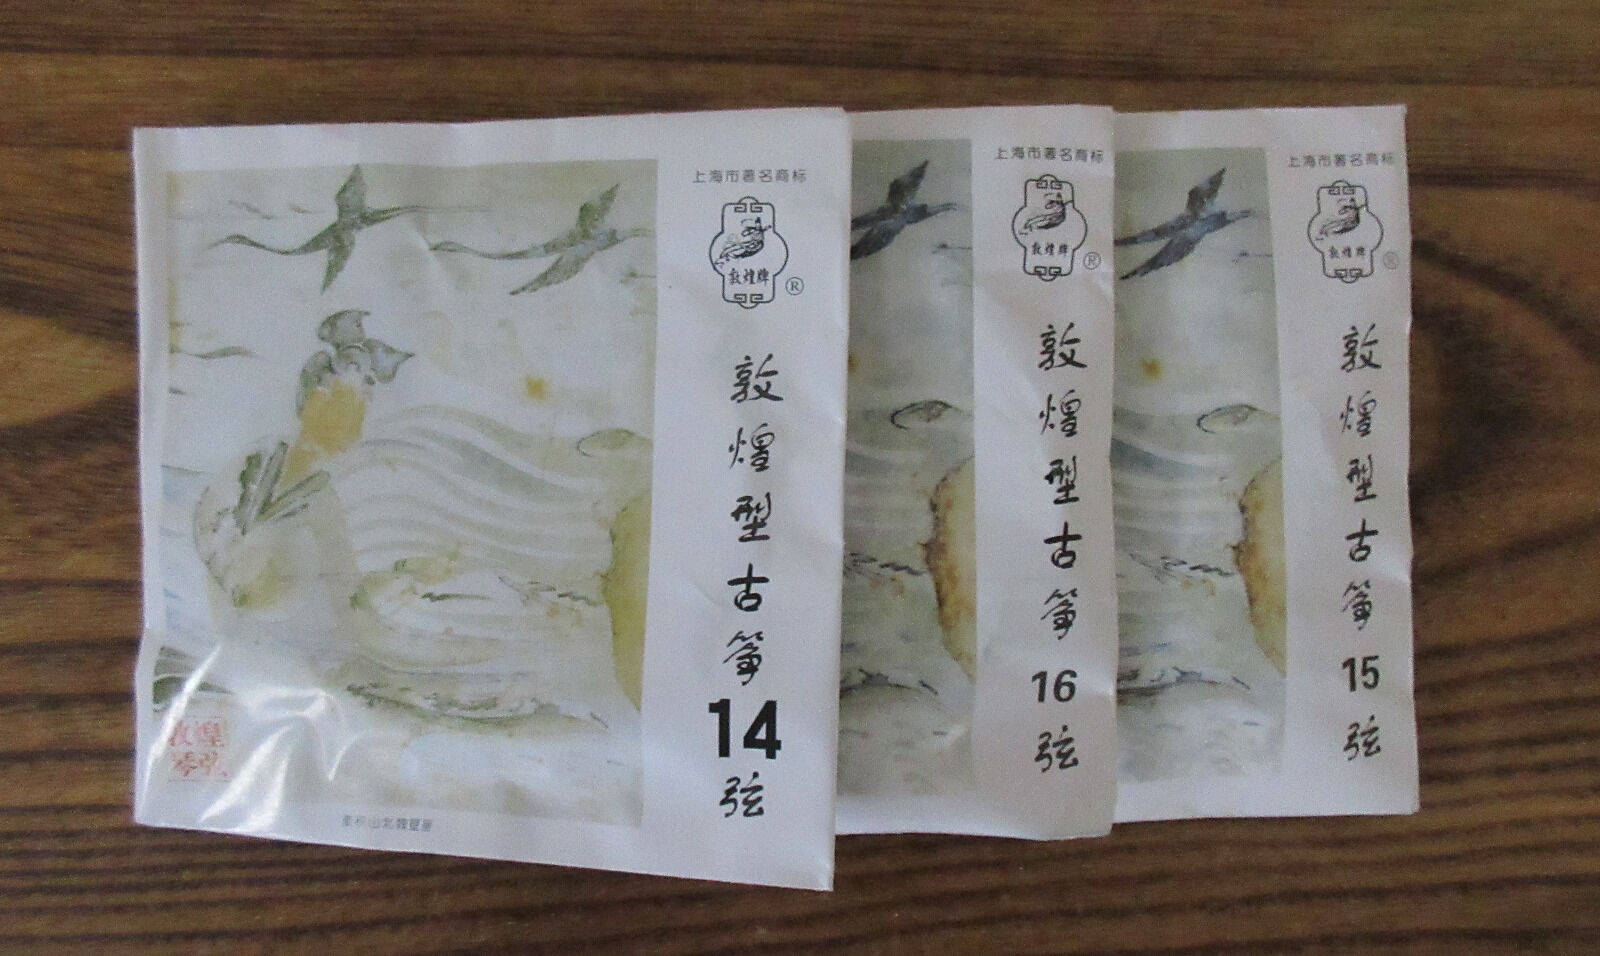 Strings for guzheng #14, #15, #16  (Jung, koto,Gayageum) - 3 pieces 古筝弦